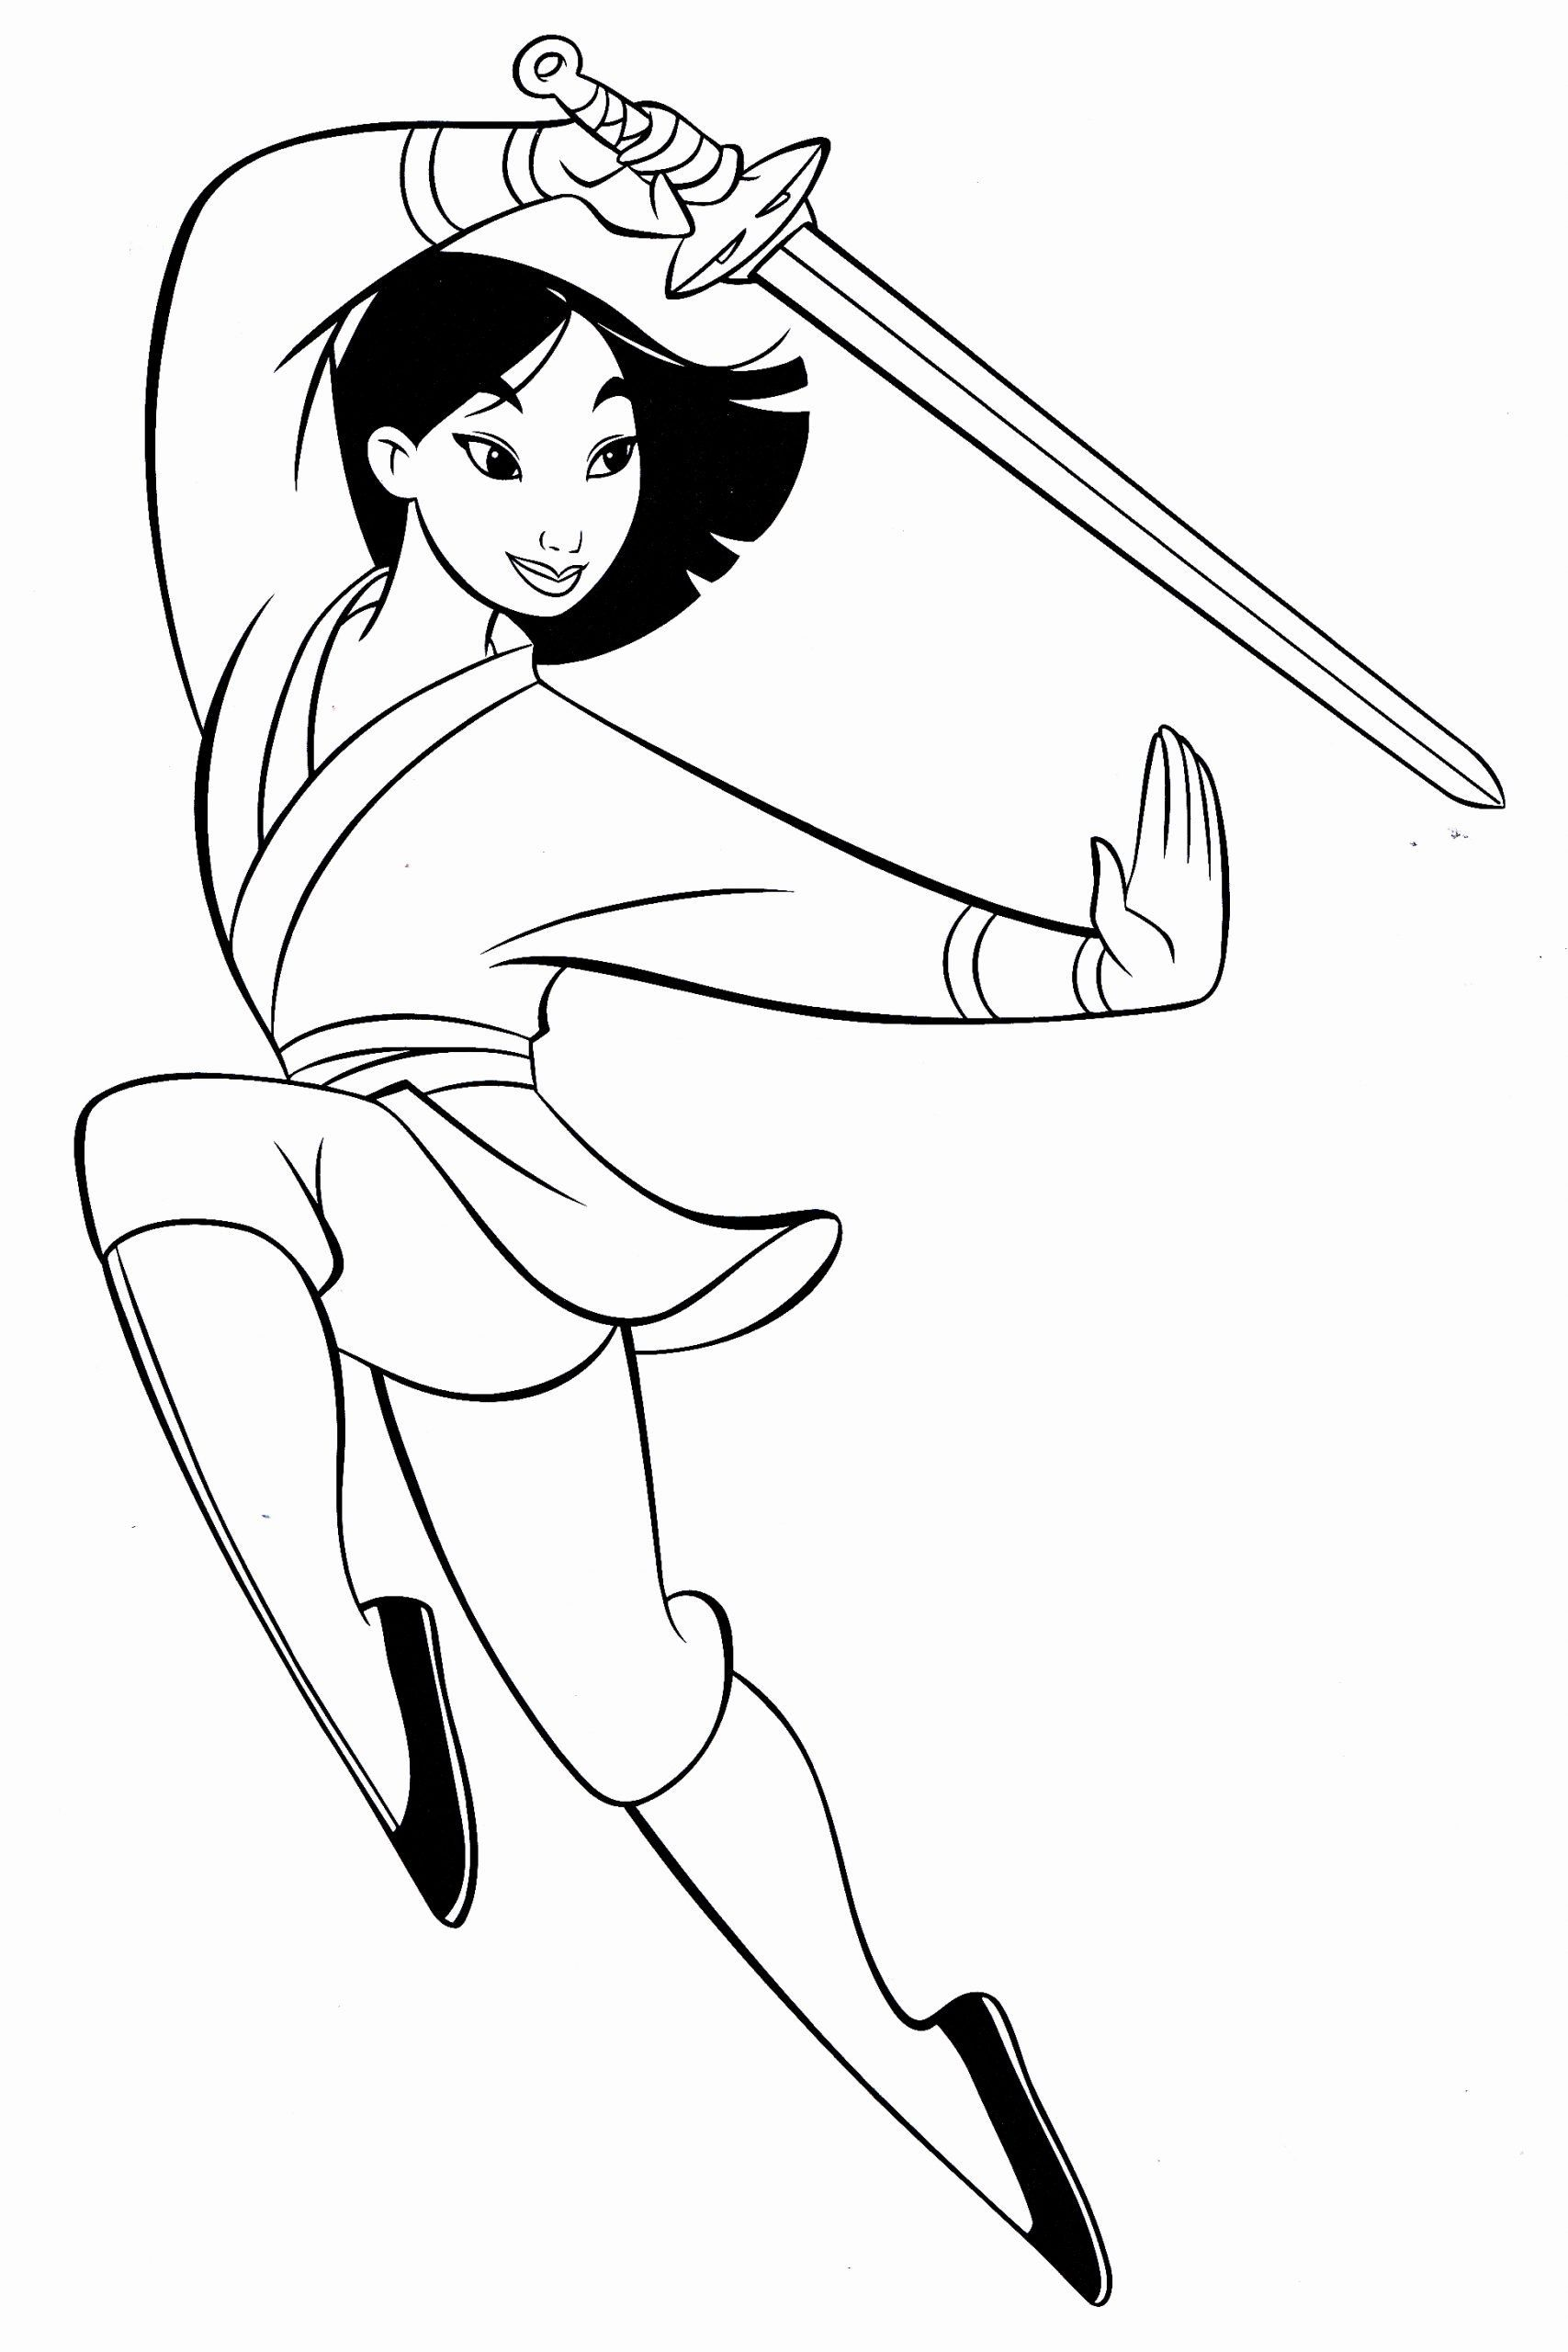 Action Figures Coloring Pages Awesome Walt Disney Coloring Pages Fa Mulan Walt Di In 2020 Disney Princess Coloring Pages Princess Coloring Pages Disney Princess Colors